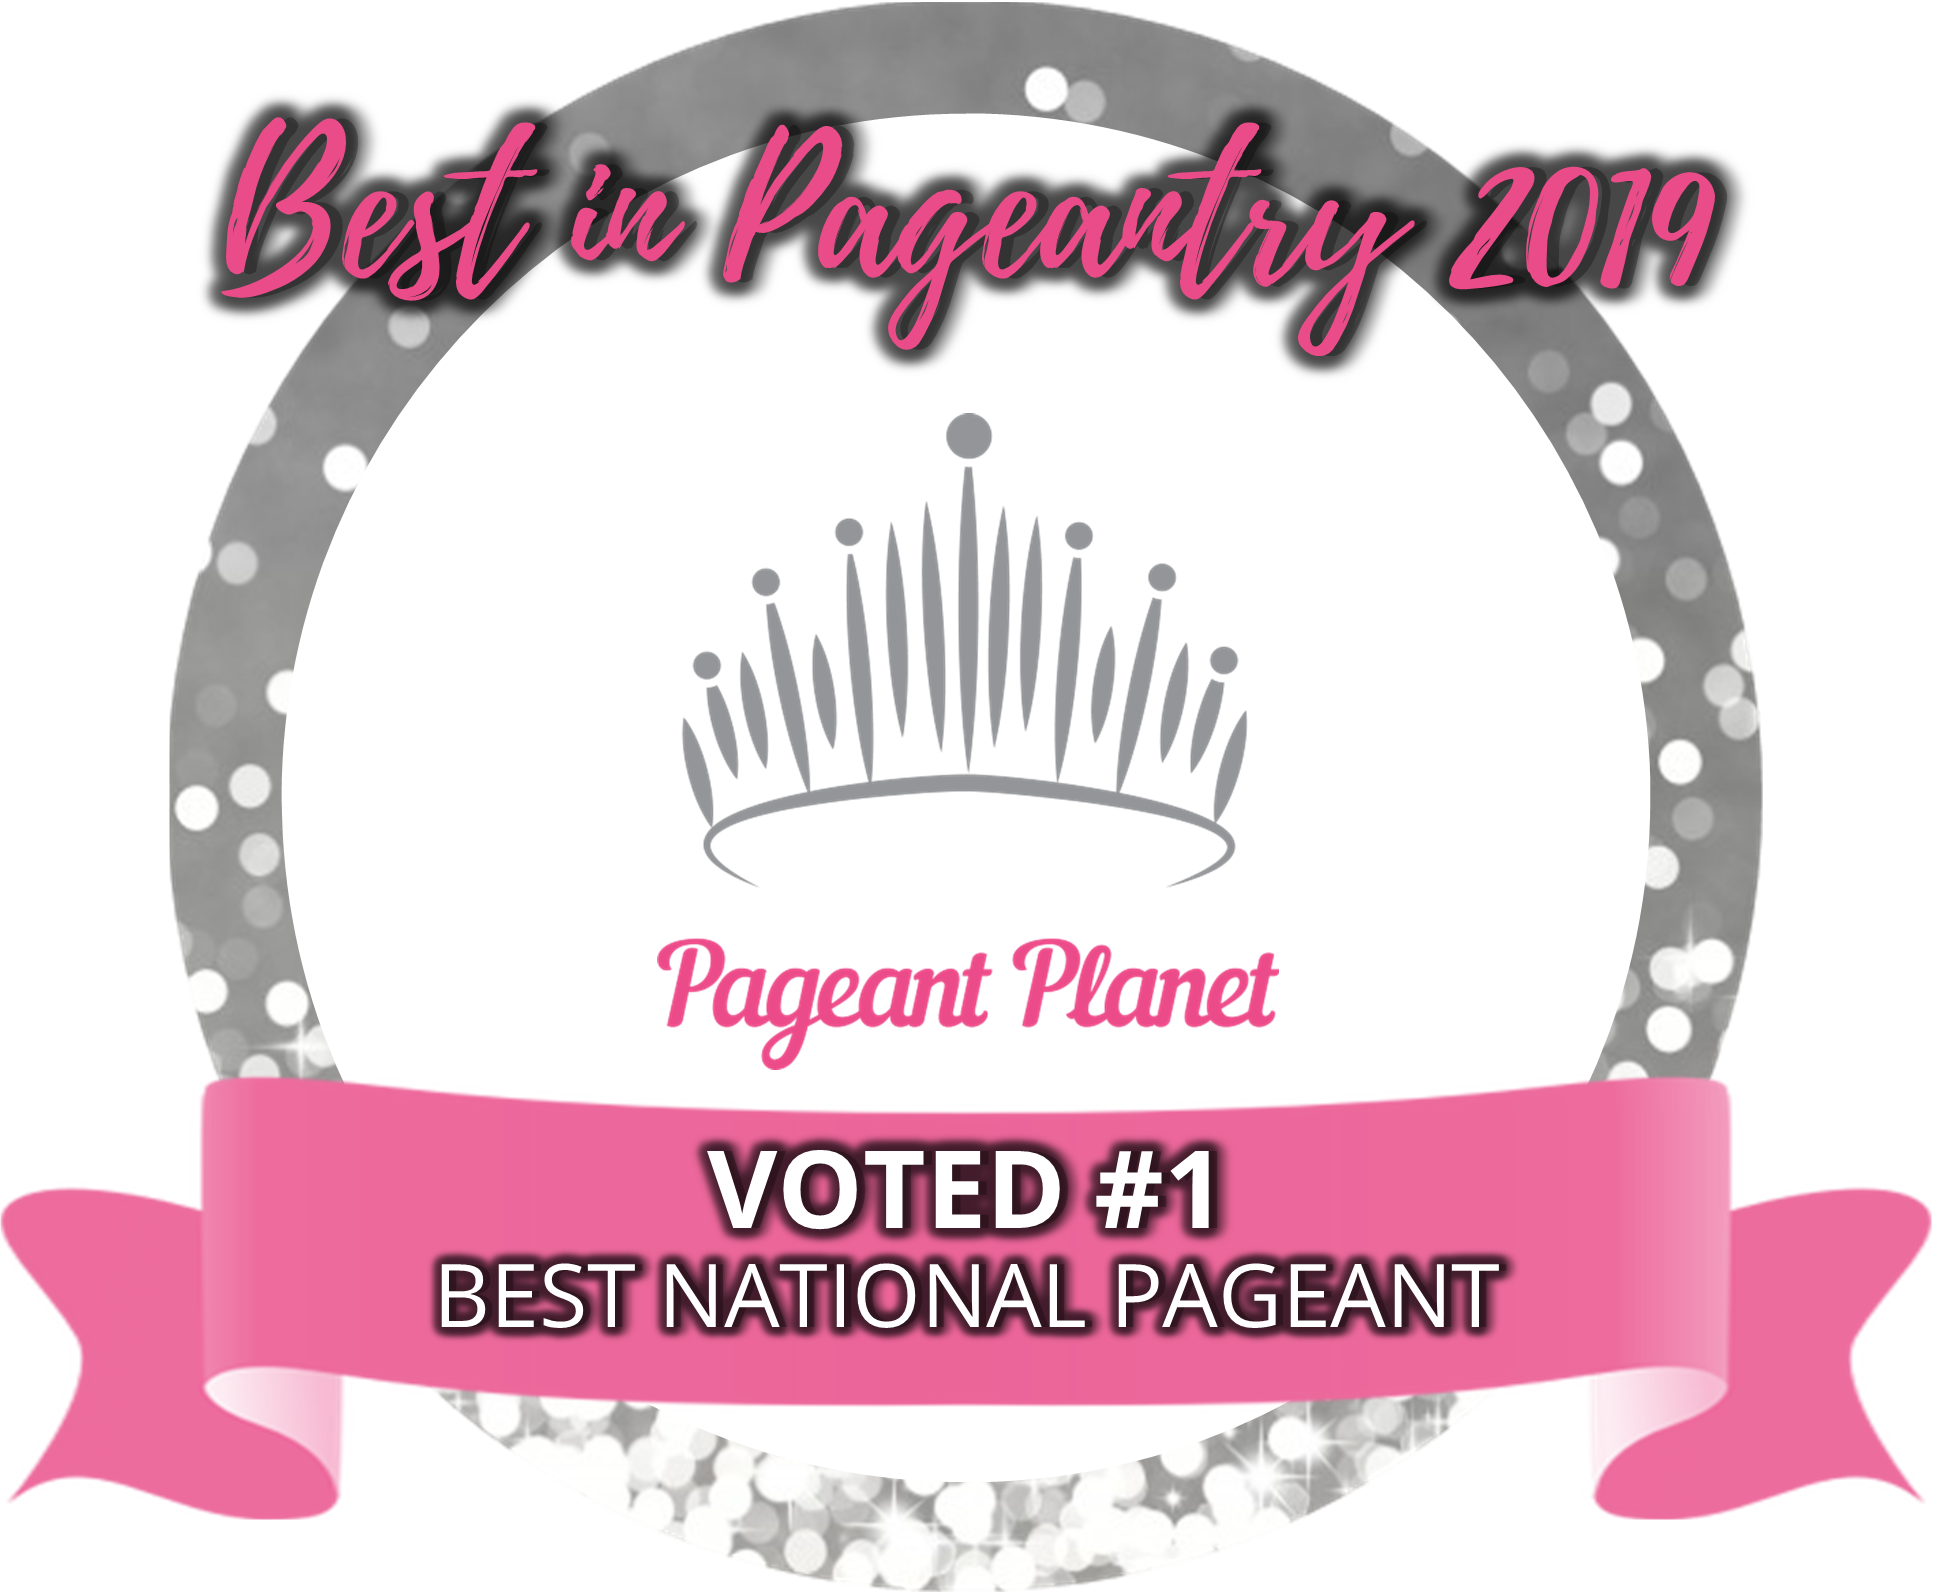 #1 Best National Pageant of 2019